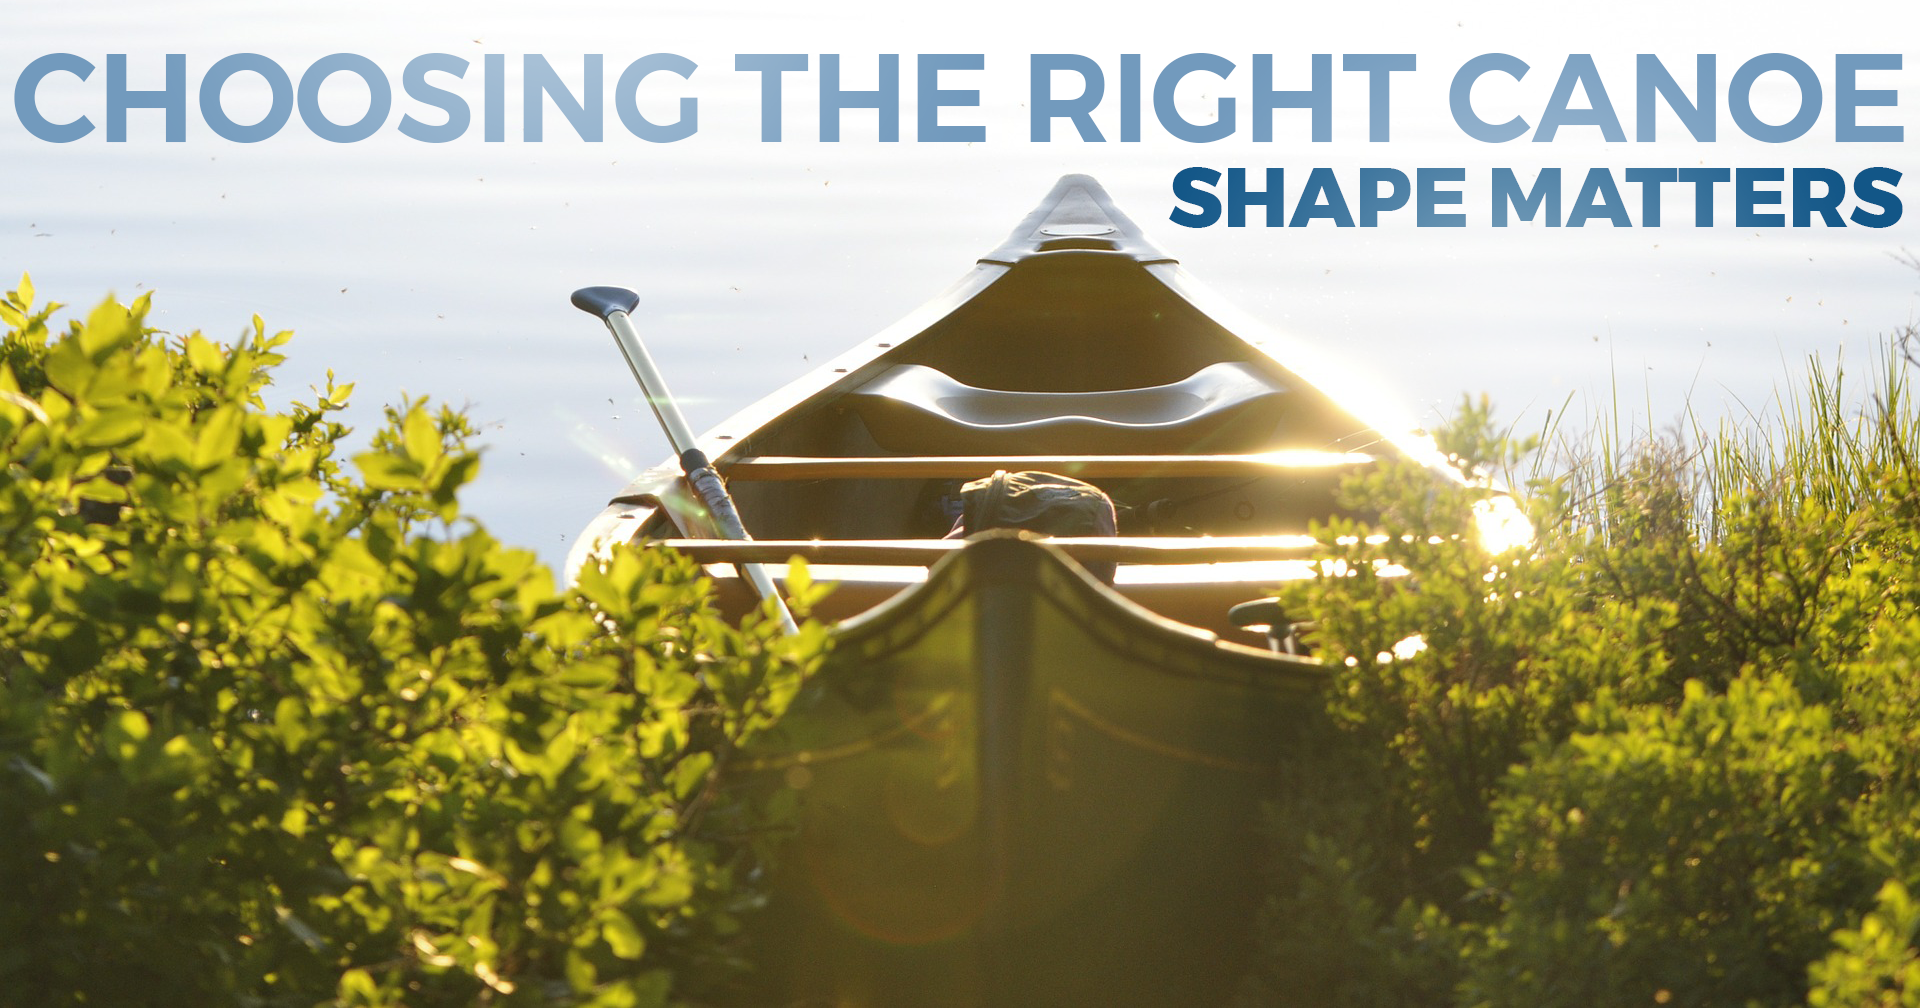 Choosing the Right Canoe - Shape Matters